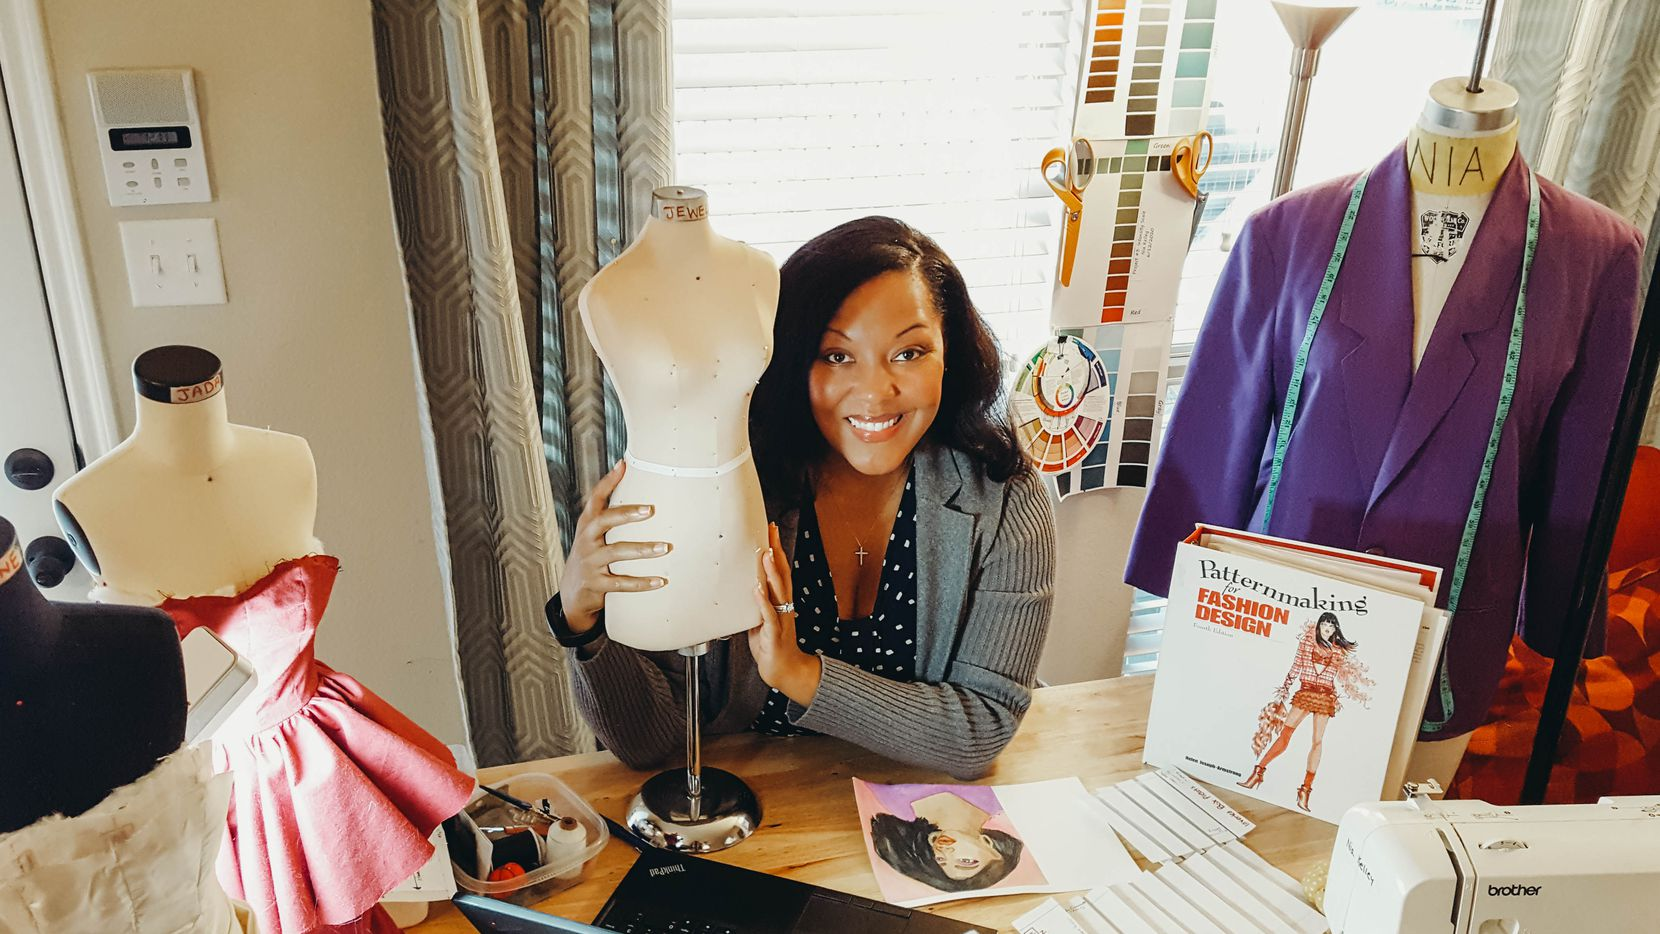 Nia Kelley is building a promising career in fashion after suffering a debilitating stroke in 2014. She says that learning to sew was therapeutic, helping her regain her hand-eye coordination.